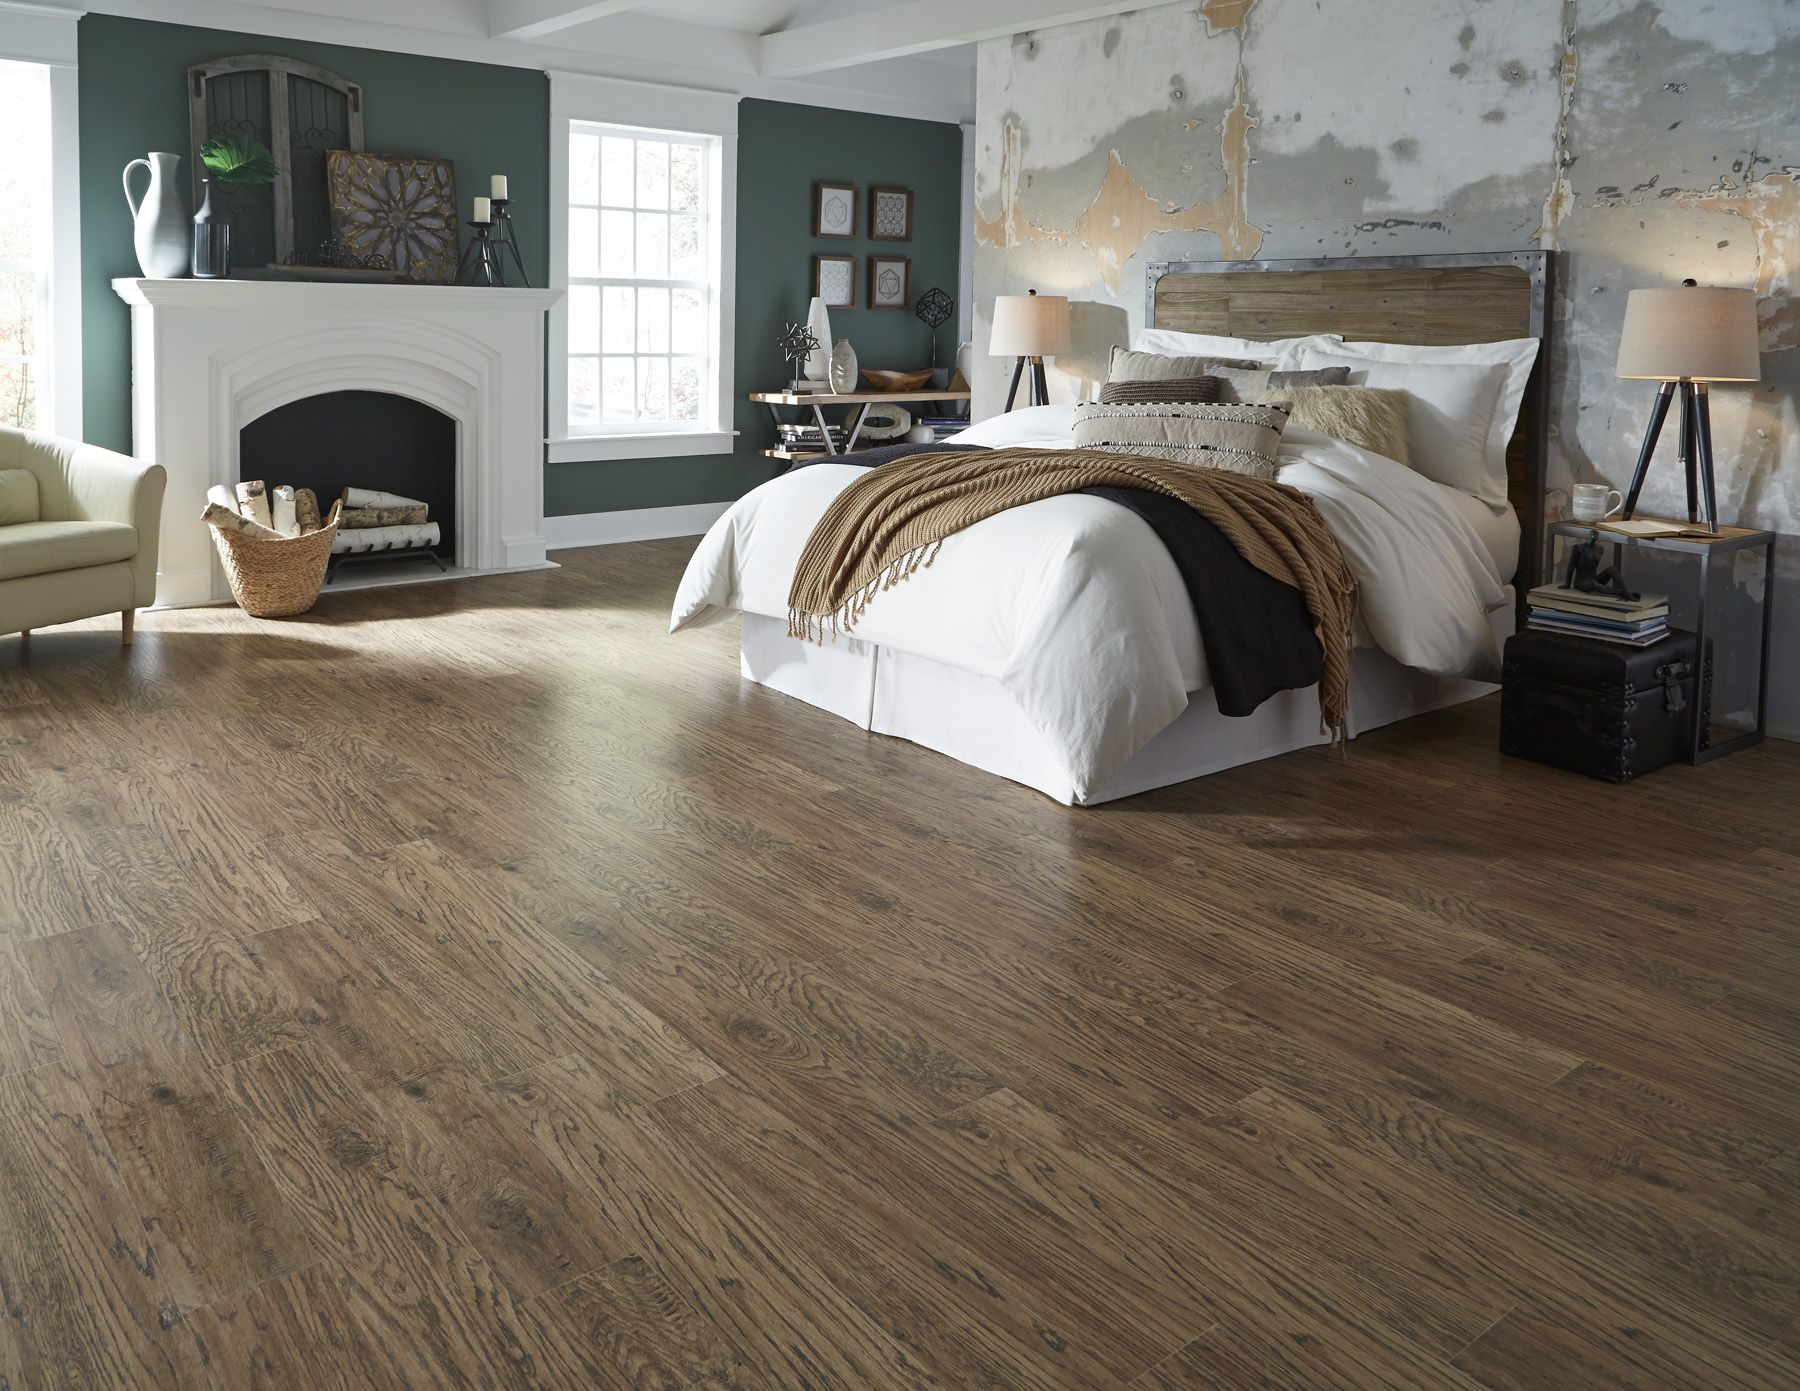 Dream Home X2o Burnished Oak 2x More Water Resistant Than Standard Laminates Flooring Sale Home Dream House